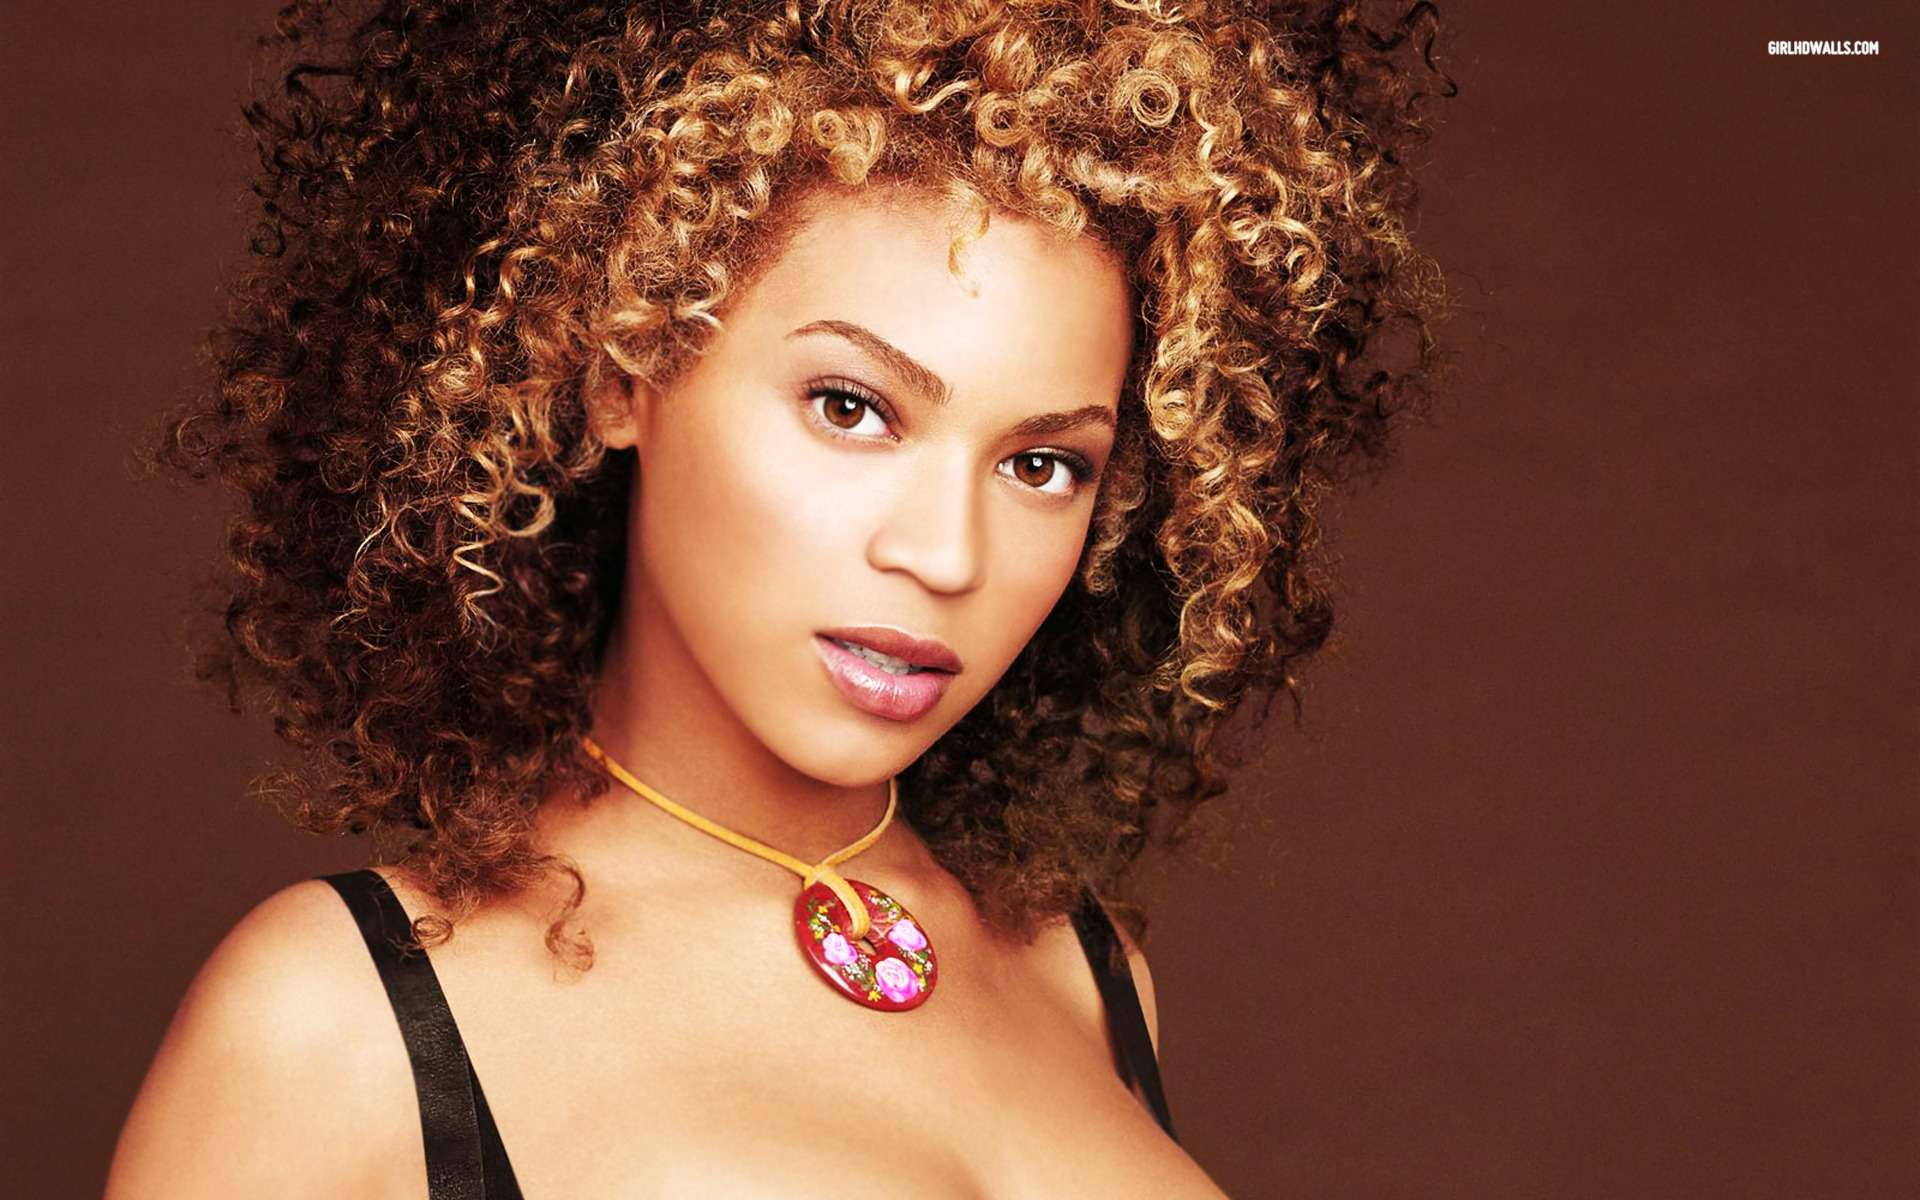 City Car View Hd Wallpaper Beyonce Knowles 5 Wallpapers Hd Wallpapers